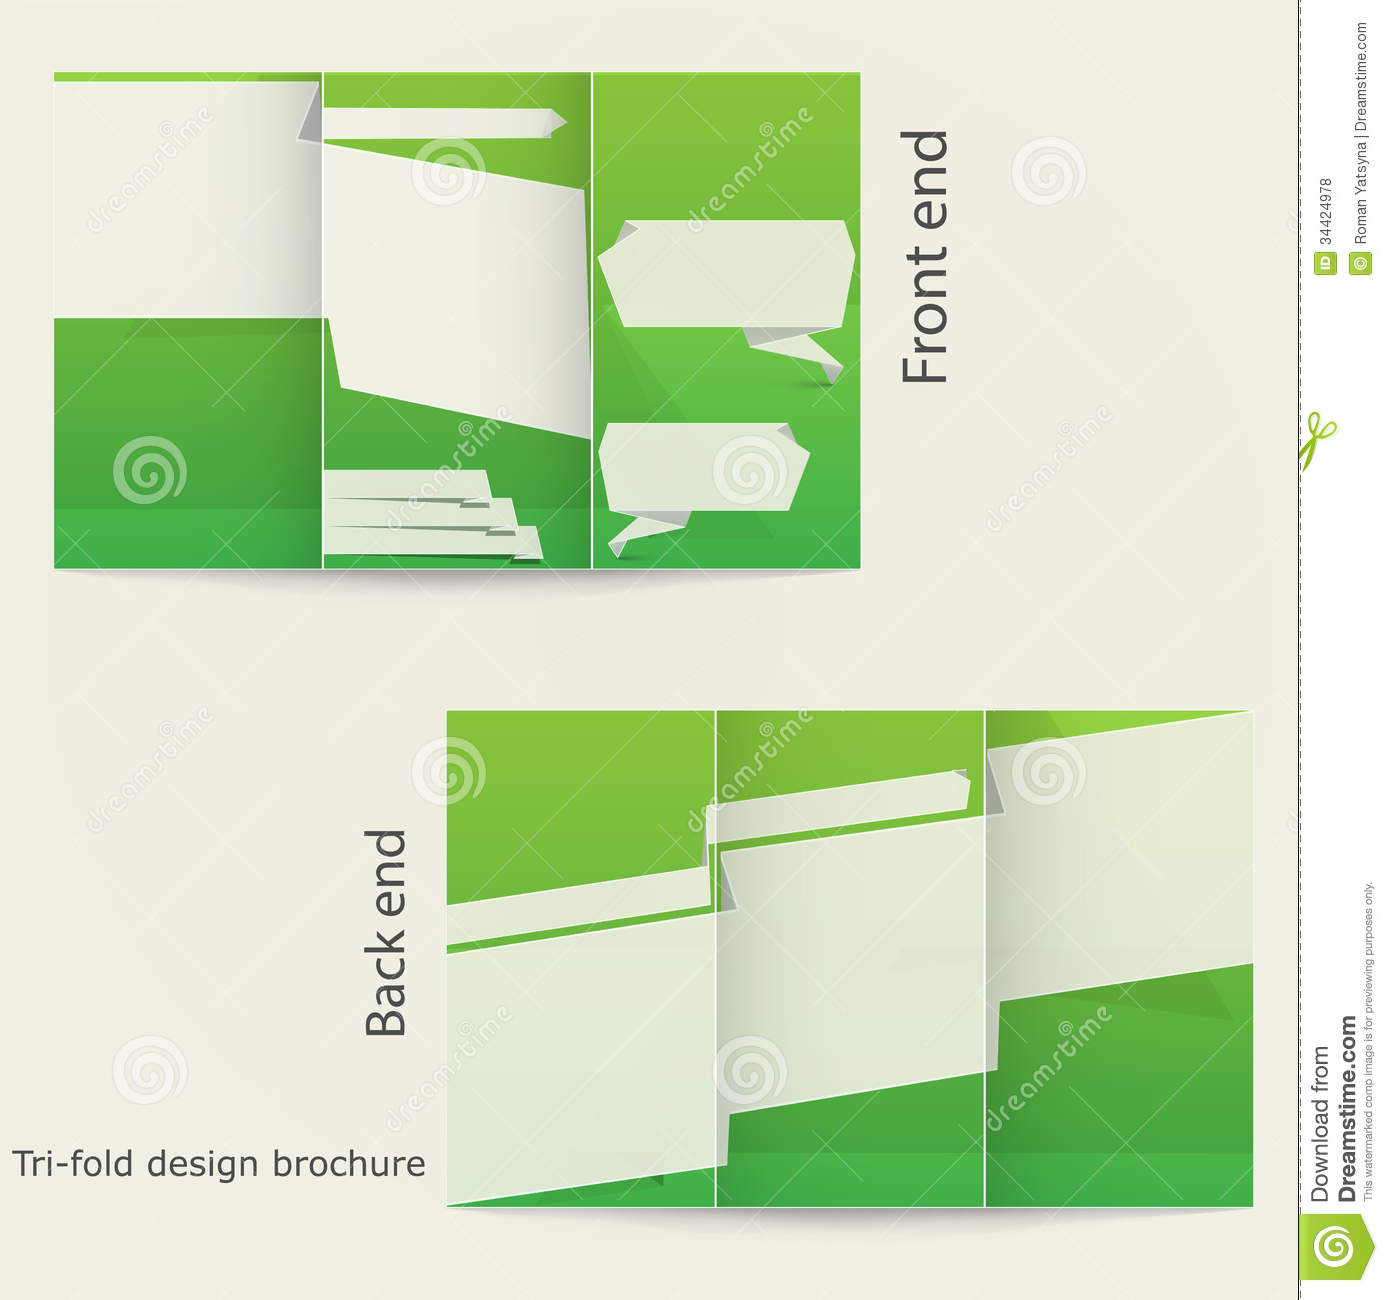 12 tri fold brochure template design images tri fold for Free tri fold brochure design templates